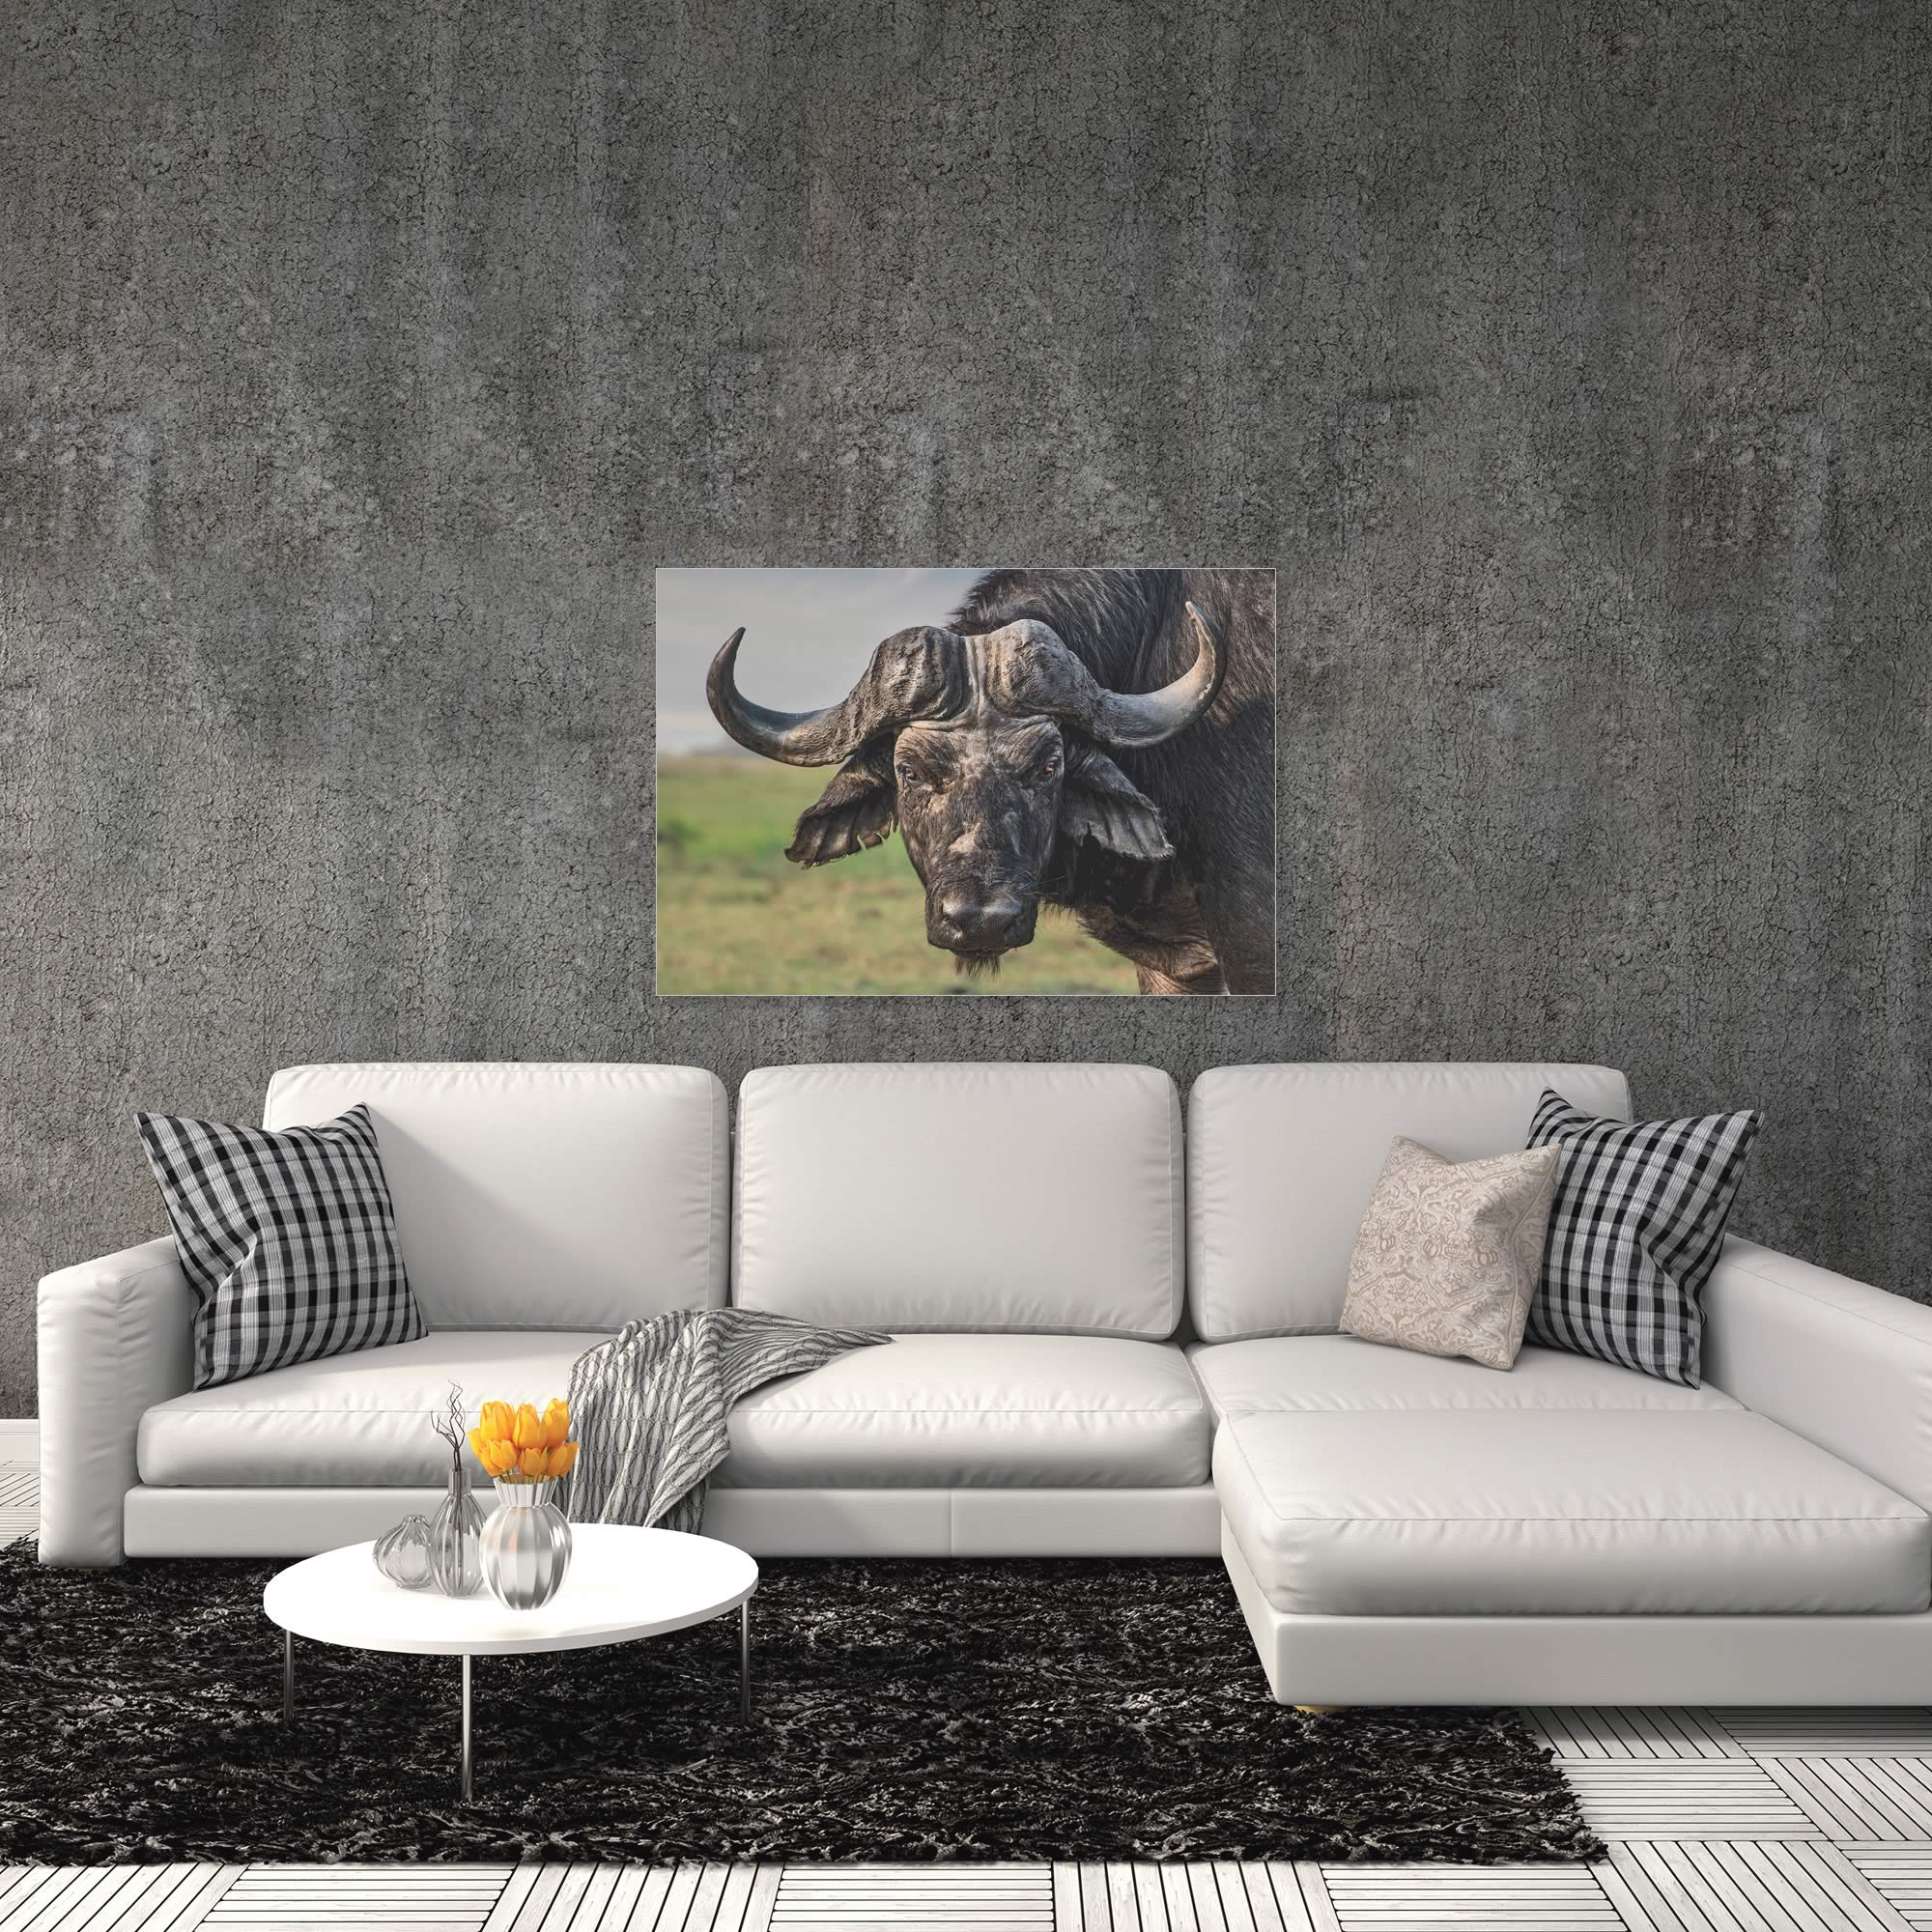 The Old Fighter Buffalo by Piet Flour - Buffalo Wall Art on Metal or Acrylic - Alternate View 1